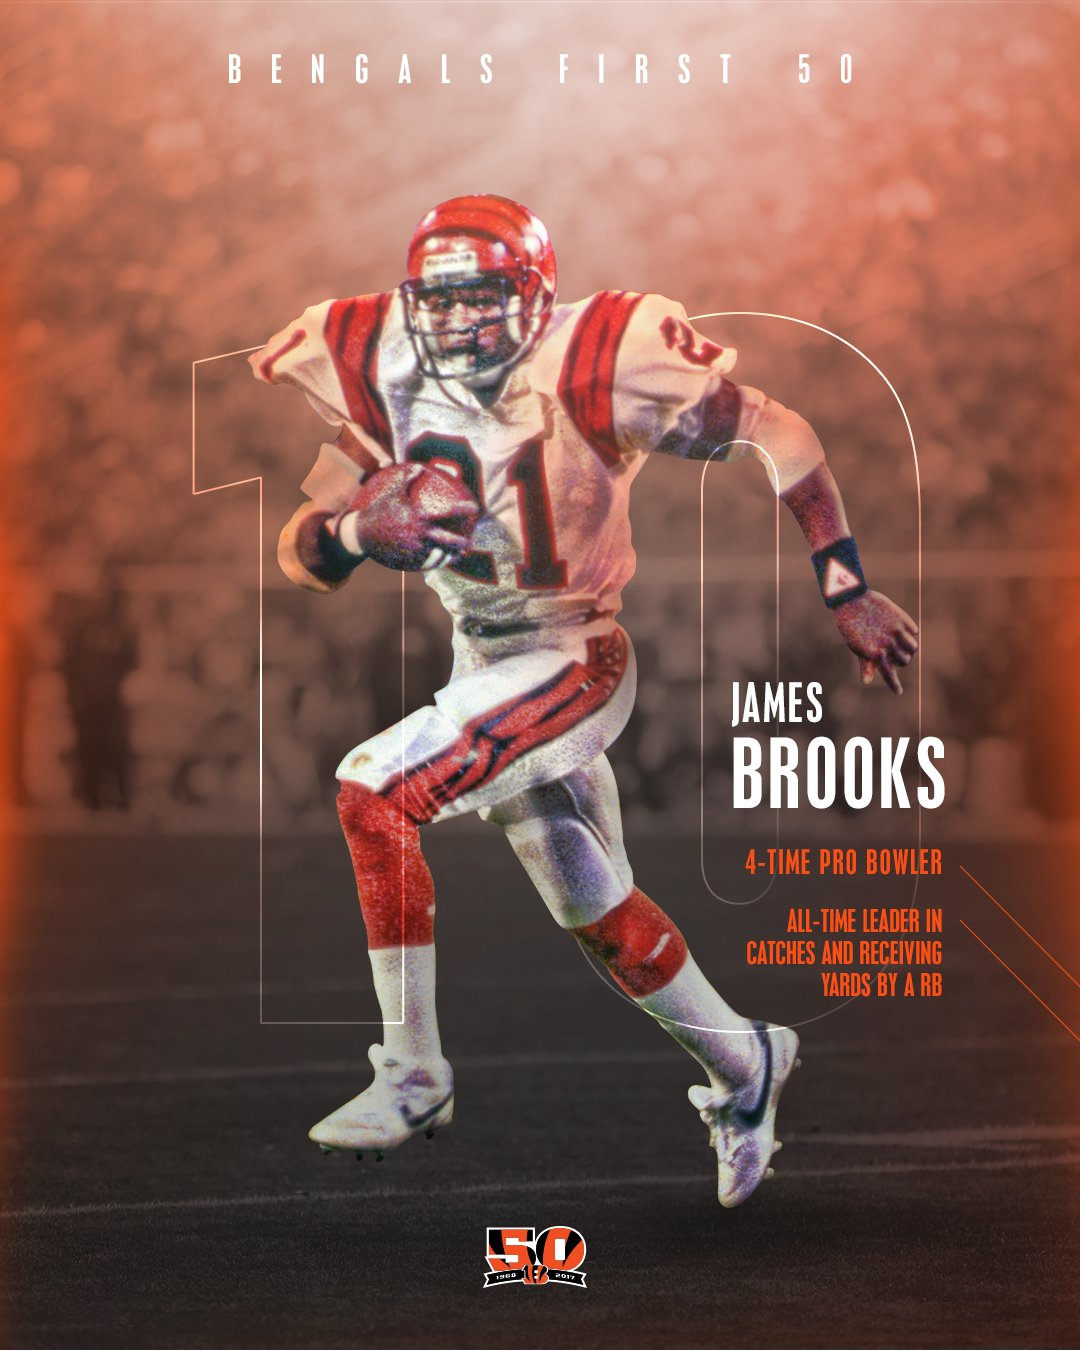 10 days from today: Ravens at Bengals  Number 10 on the #Bengals First 50: James Brooks  #Bengals50 https://t.co/pmoTNPhjEH